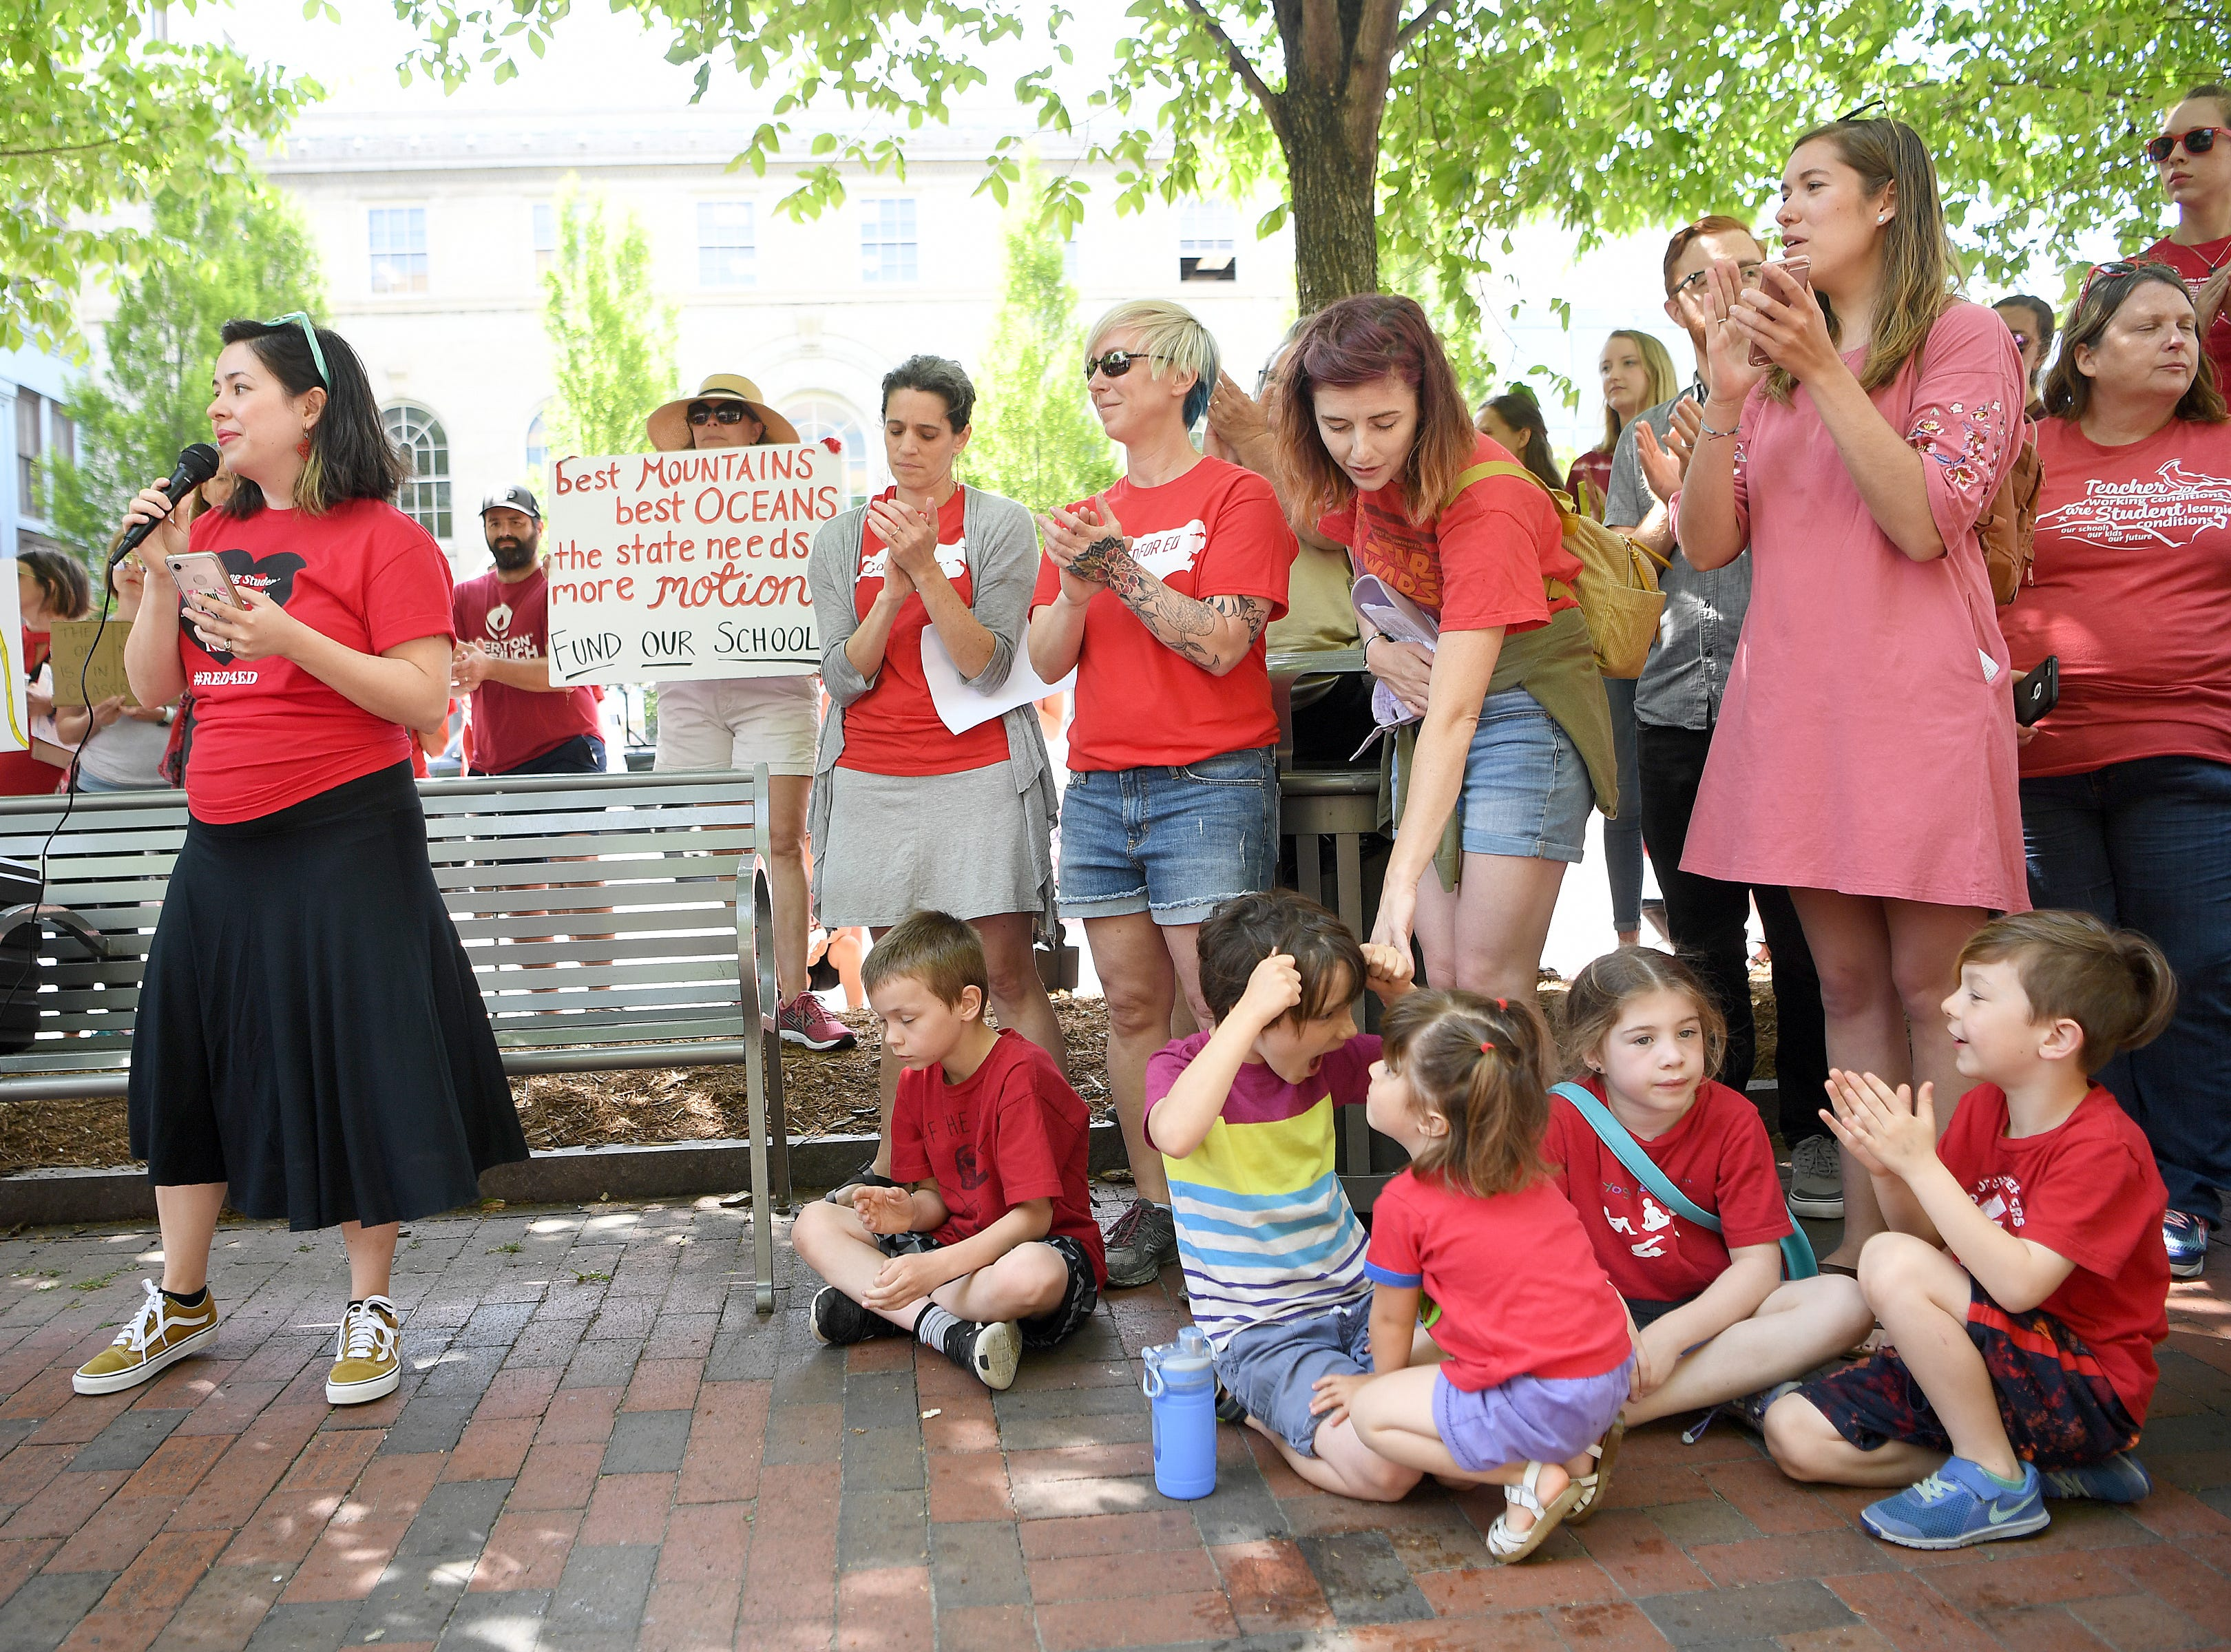 Kimberly Eggett, a Claxton Elementary School teacher, speaks to the crowd during the Asheville rally for public education at the Vance monument on May 1, 2019. The rally coincided with the NC Association of EducatorsÕ Day of Action in Raleigh.